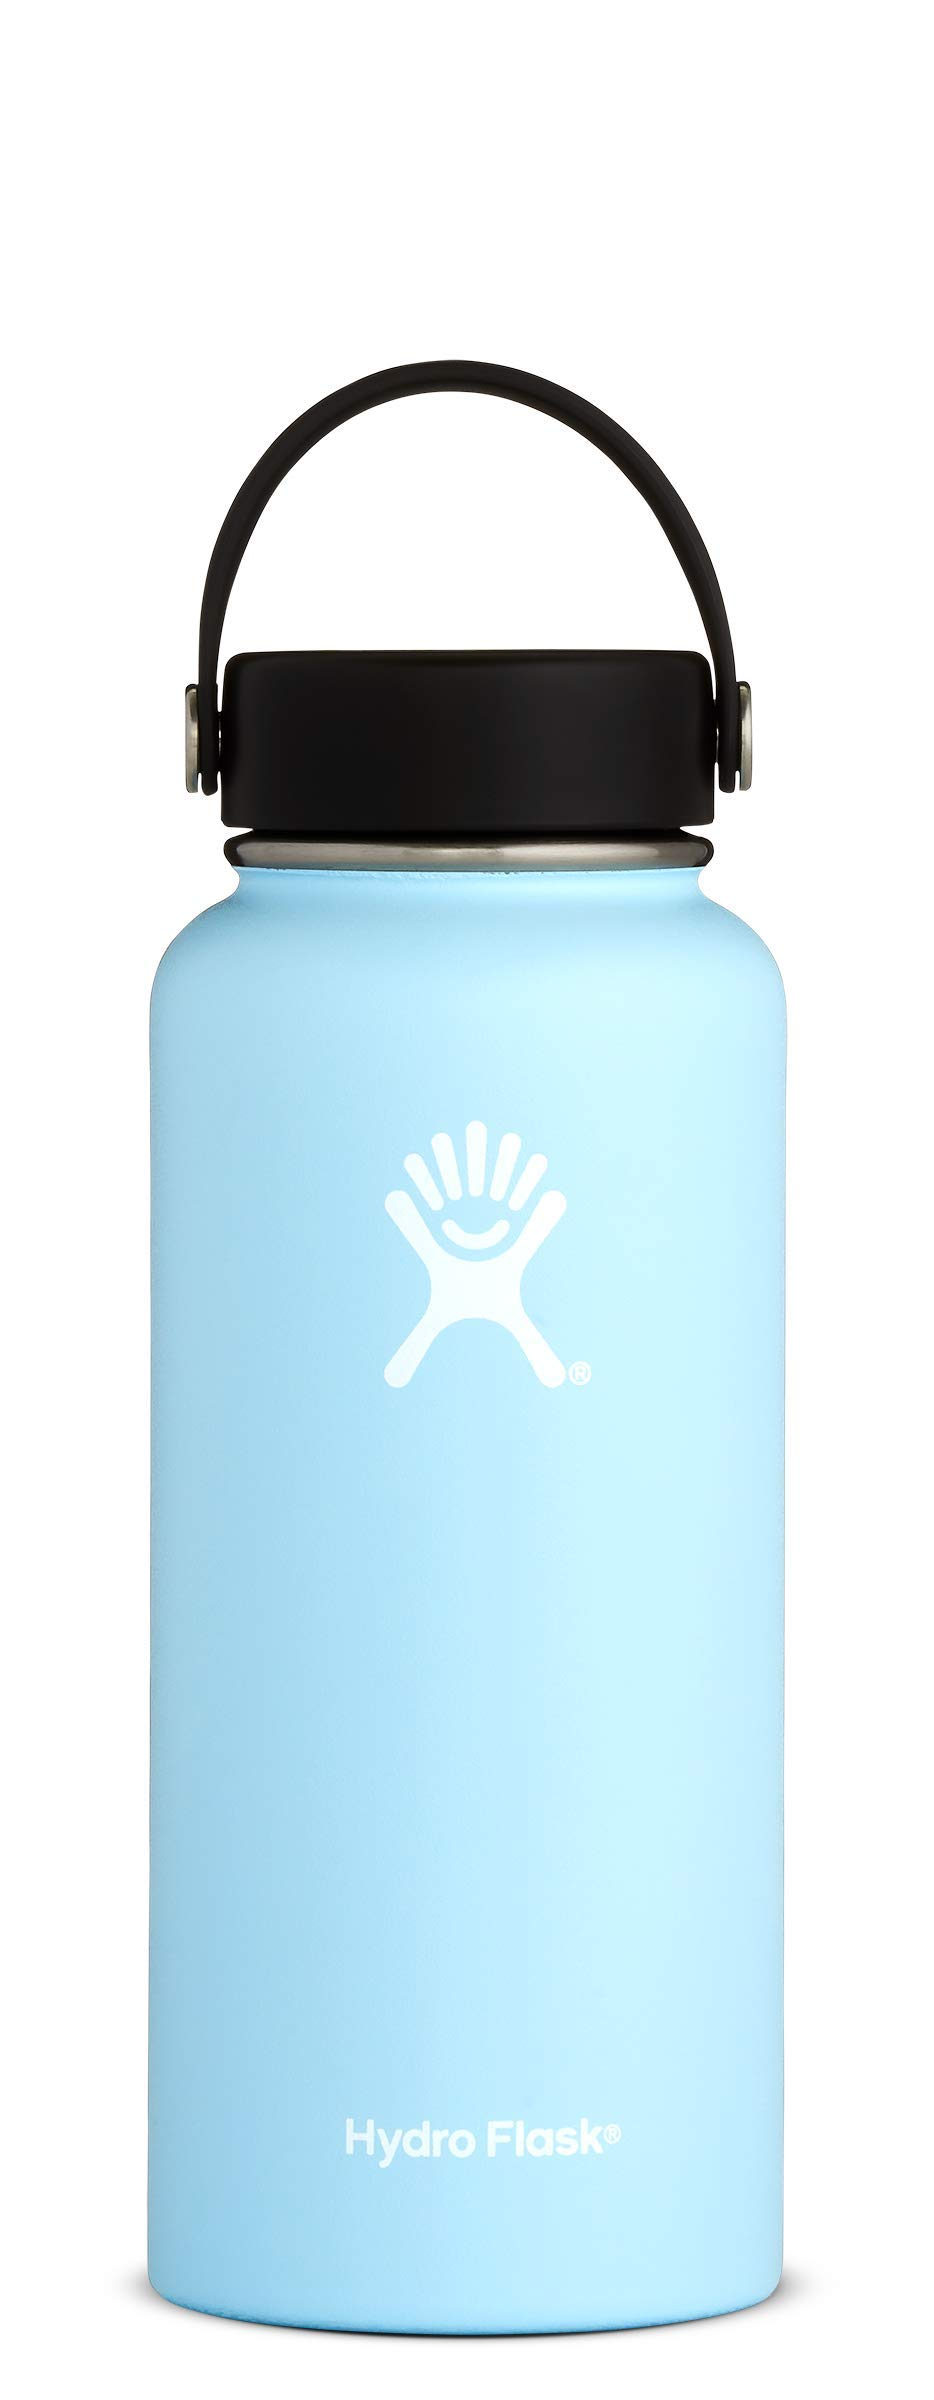 Hydro Flask Stainless Steel Water Bottle, Wide Mouth with BPA Free Flex Cap, 32 oz, Frost